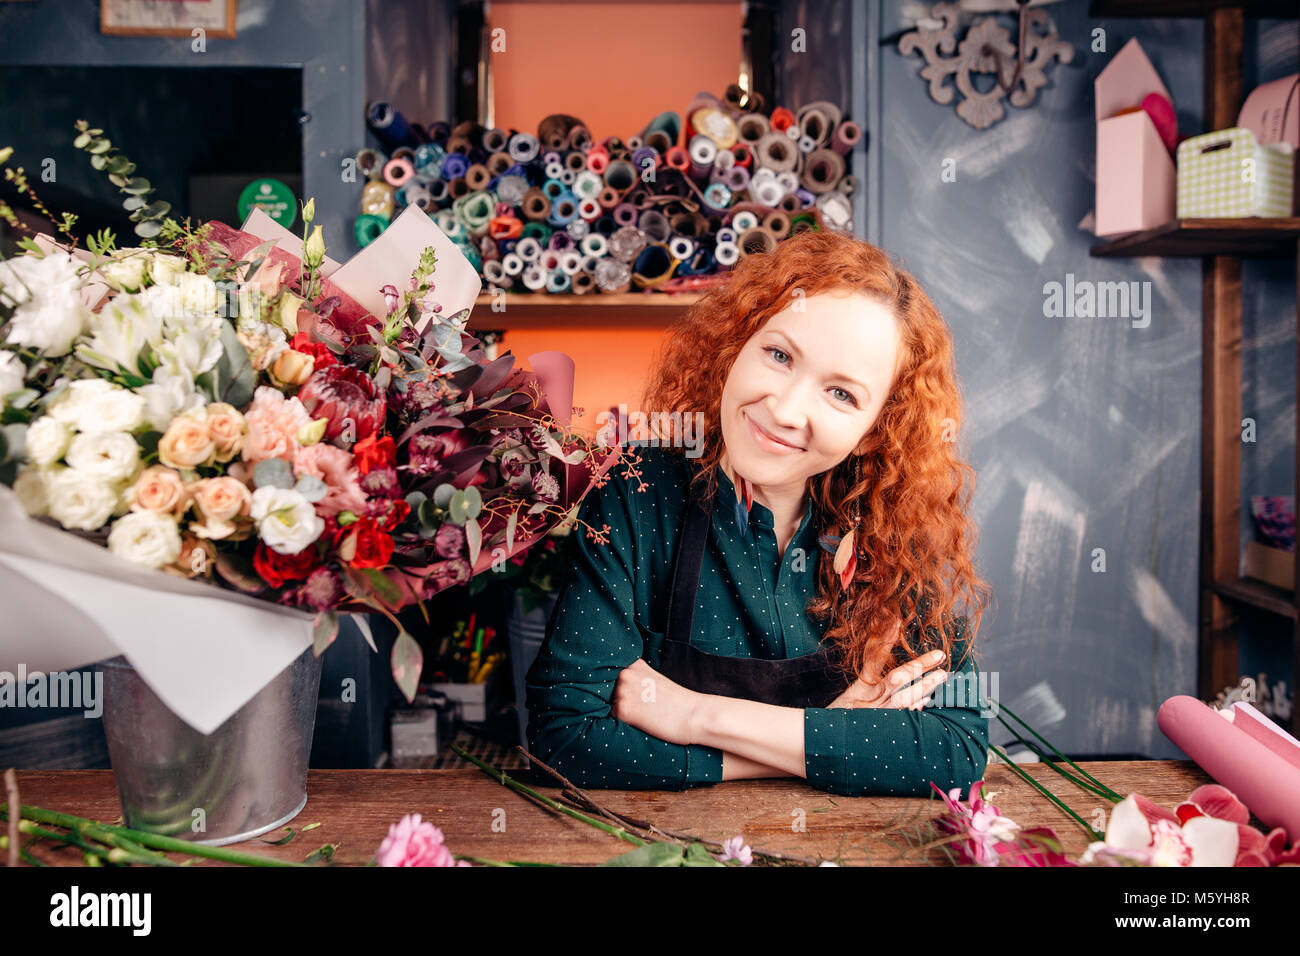 Florist leading small business, sitting beside desk in shop - Stock Image